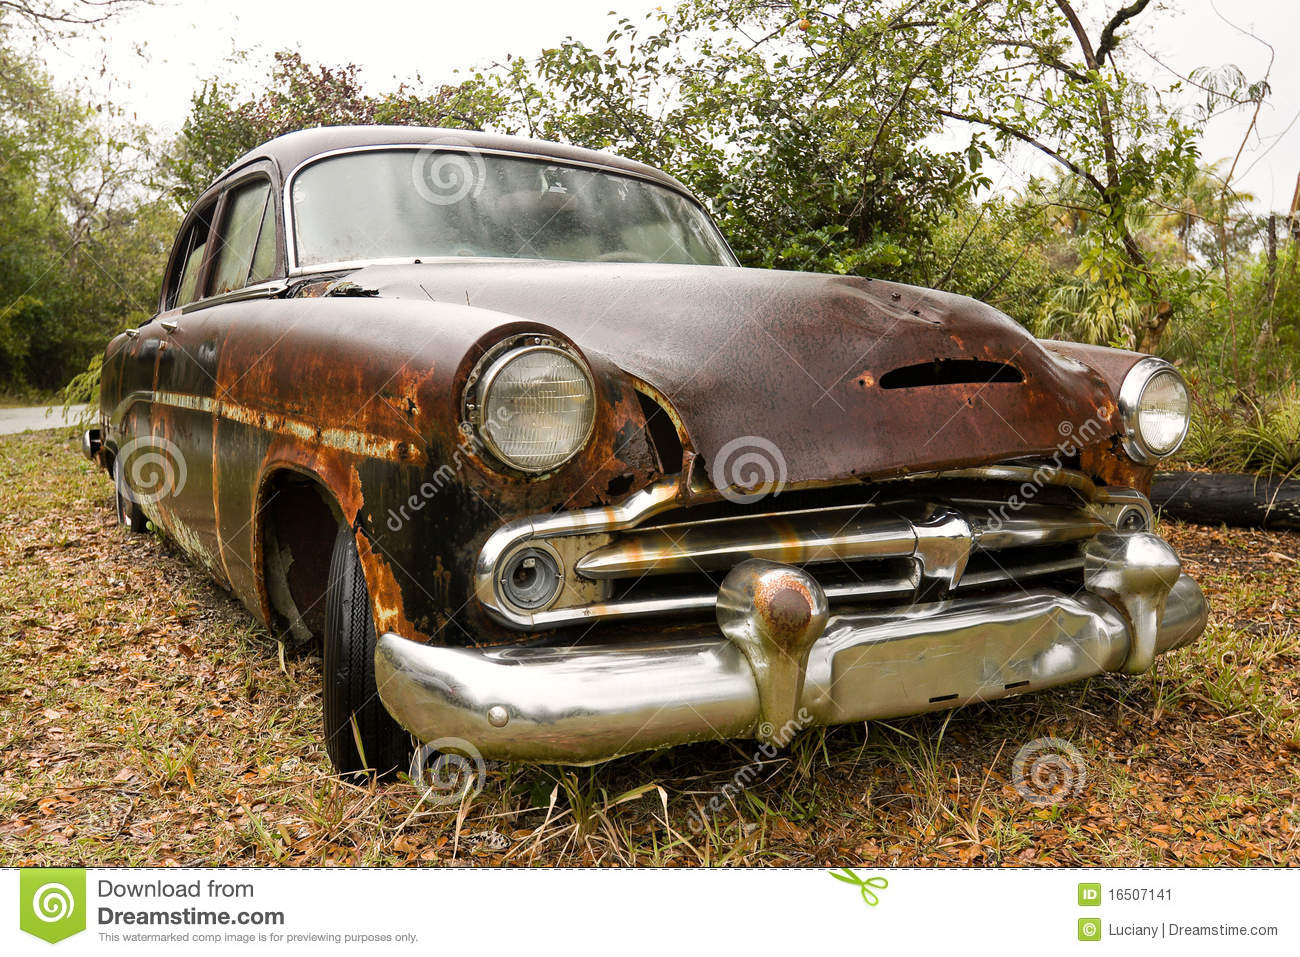 Old Rusty Car Stock Image - Image: 16507141